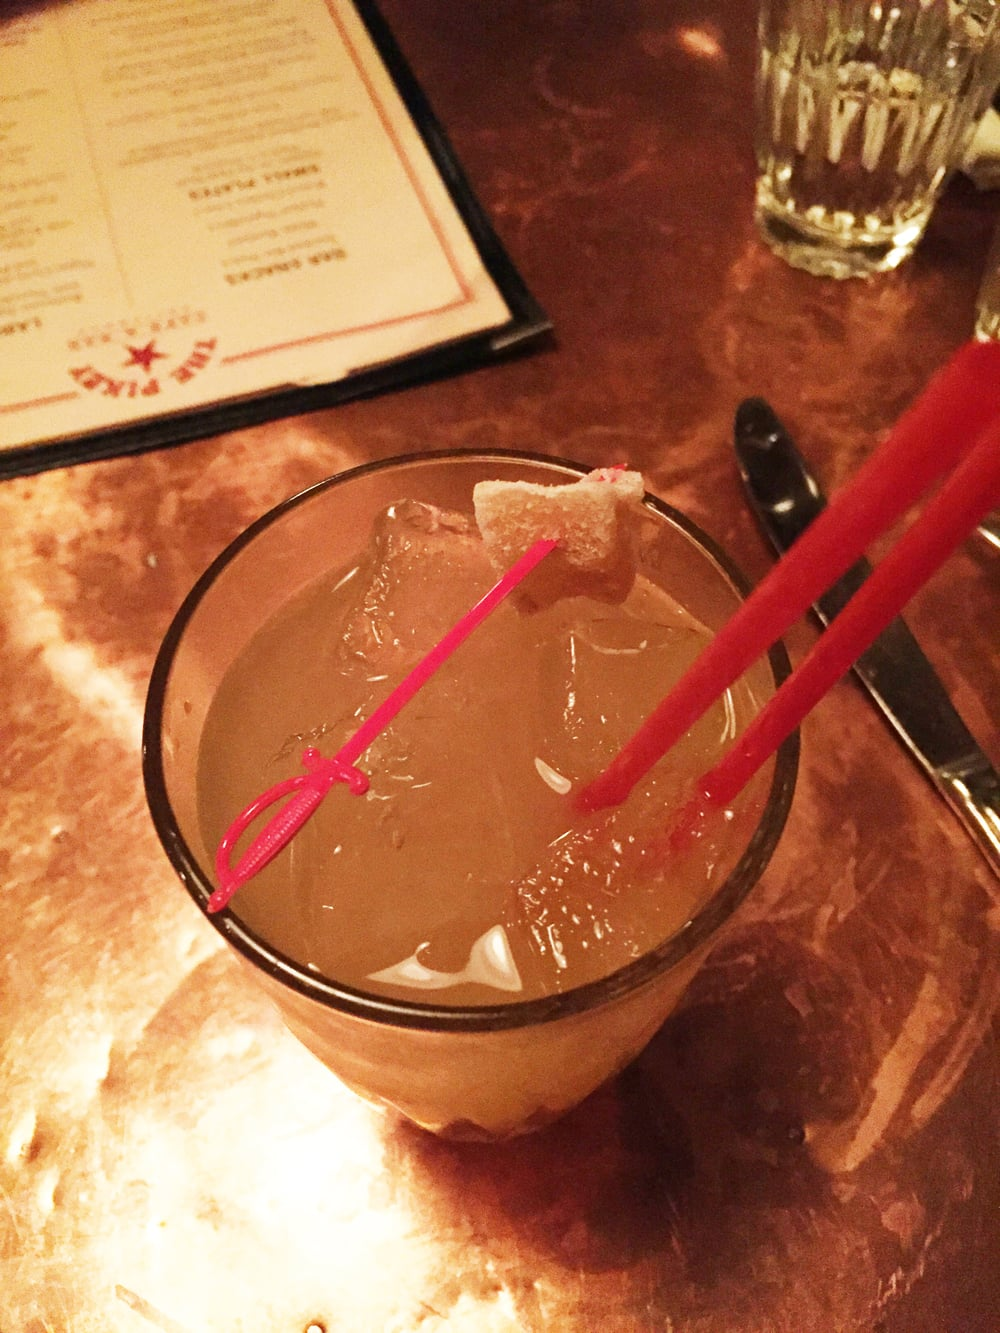 GINGER MINGE -  Famous Grouse Scotch, Ginger Juice, Lemon Juice, Ginger Beer, Rocks.